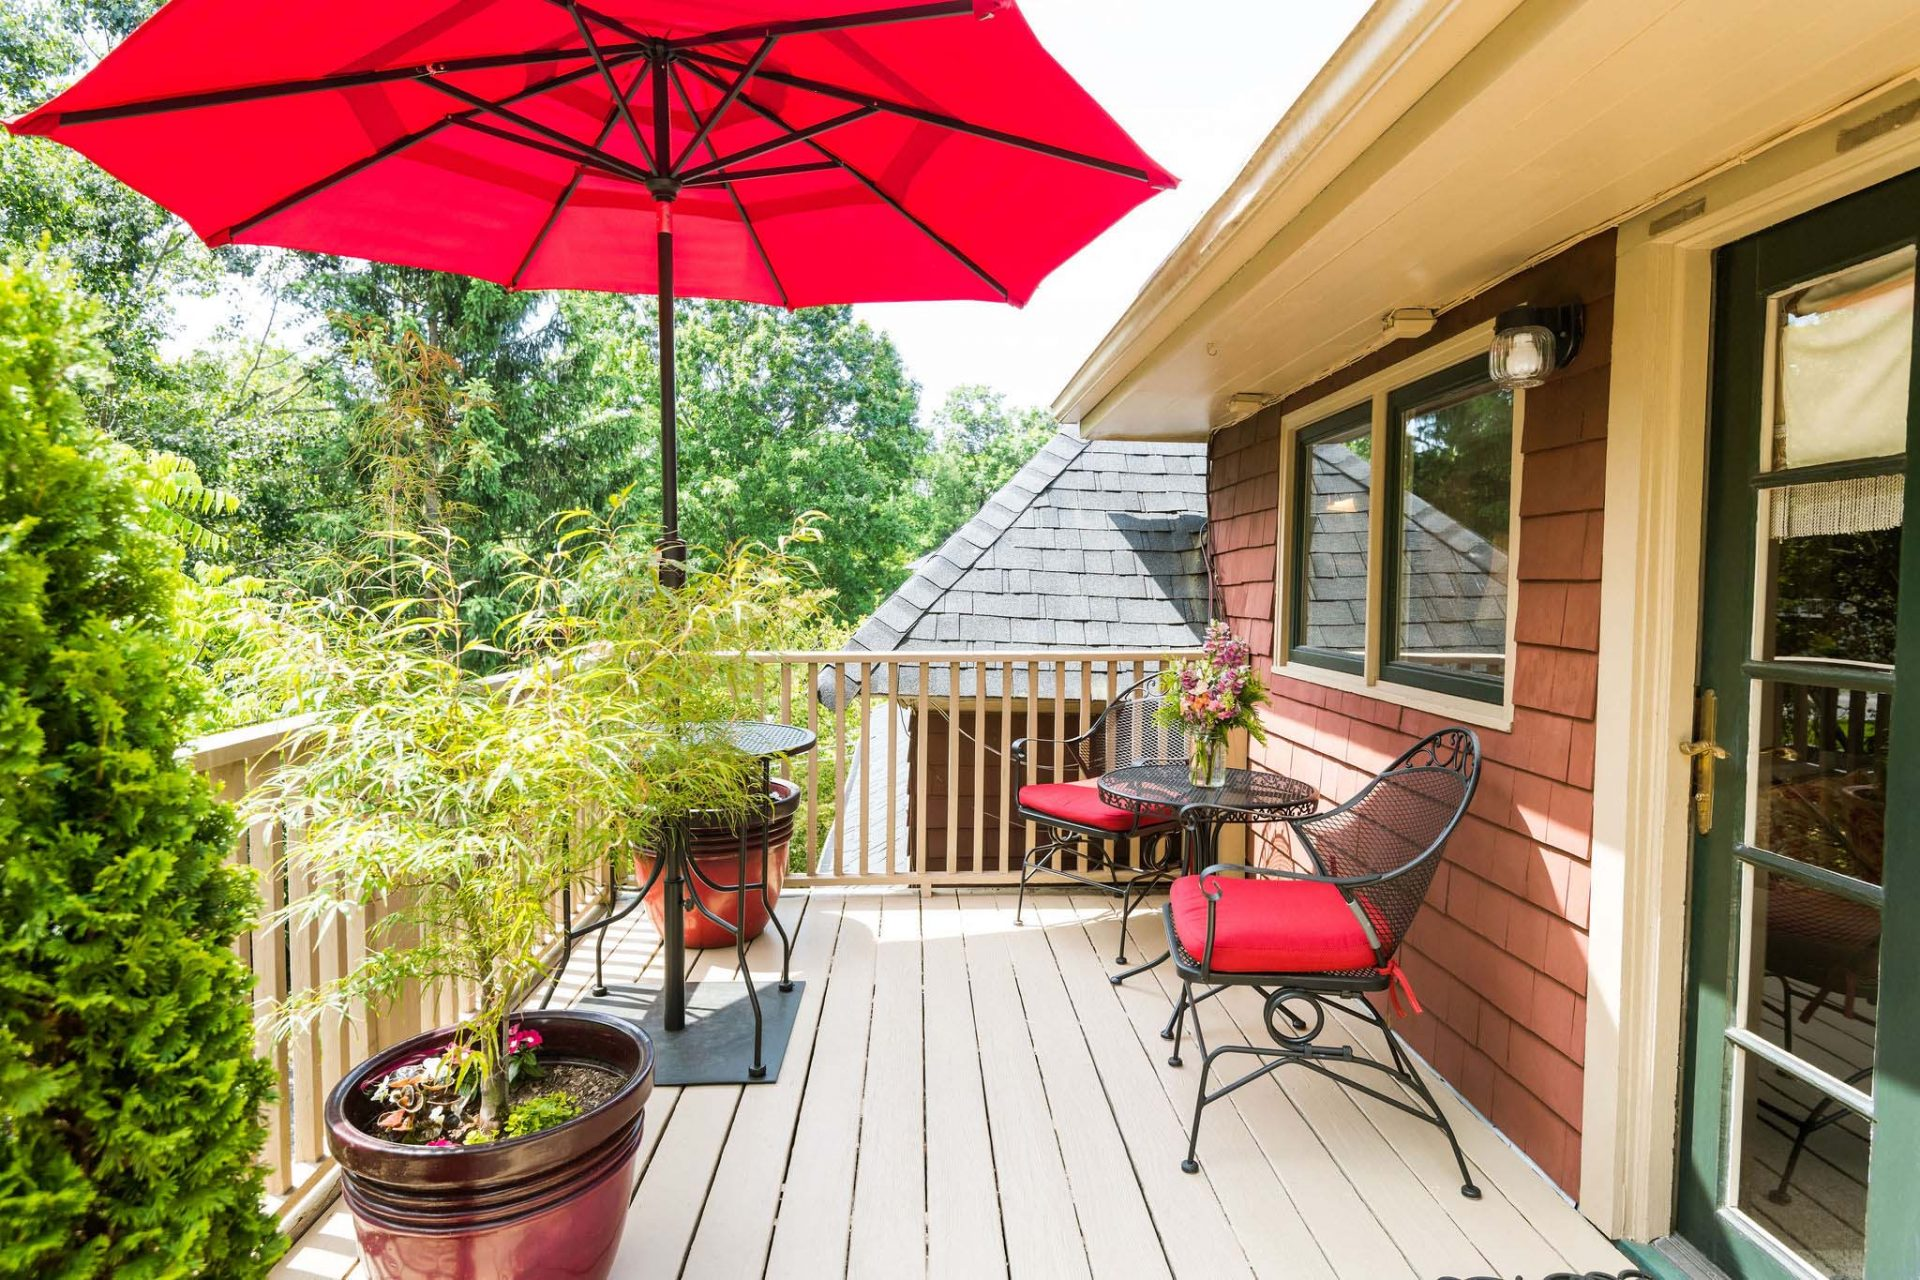 A private fenced upper deck with several plants, two chairs, small table, and a red sun garden umbrella.